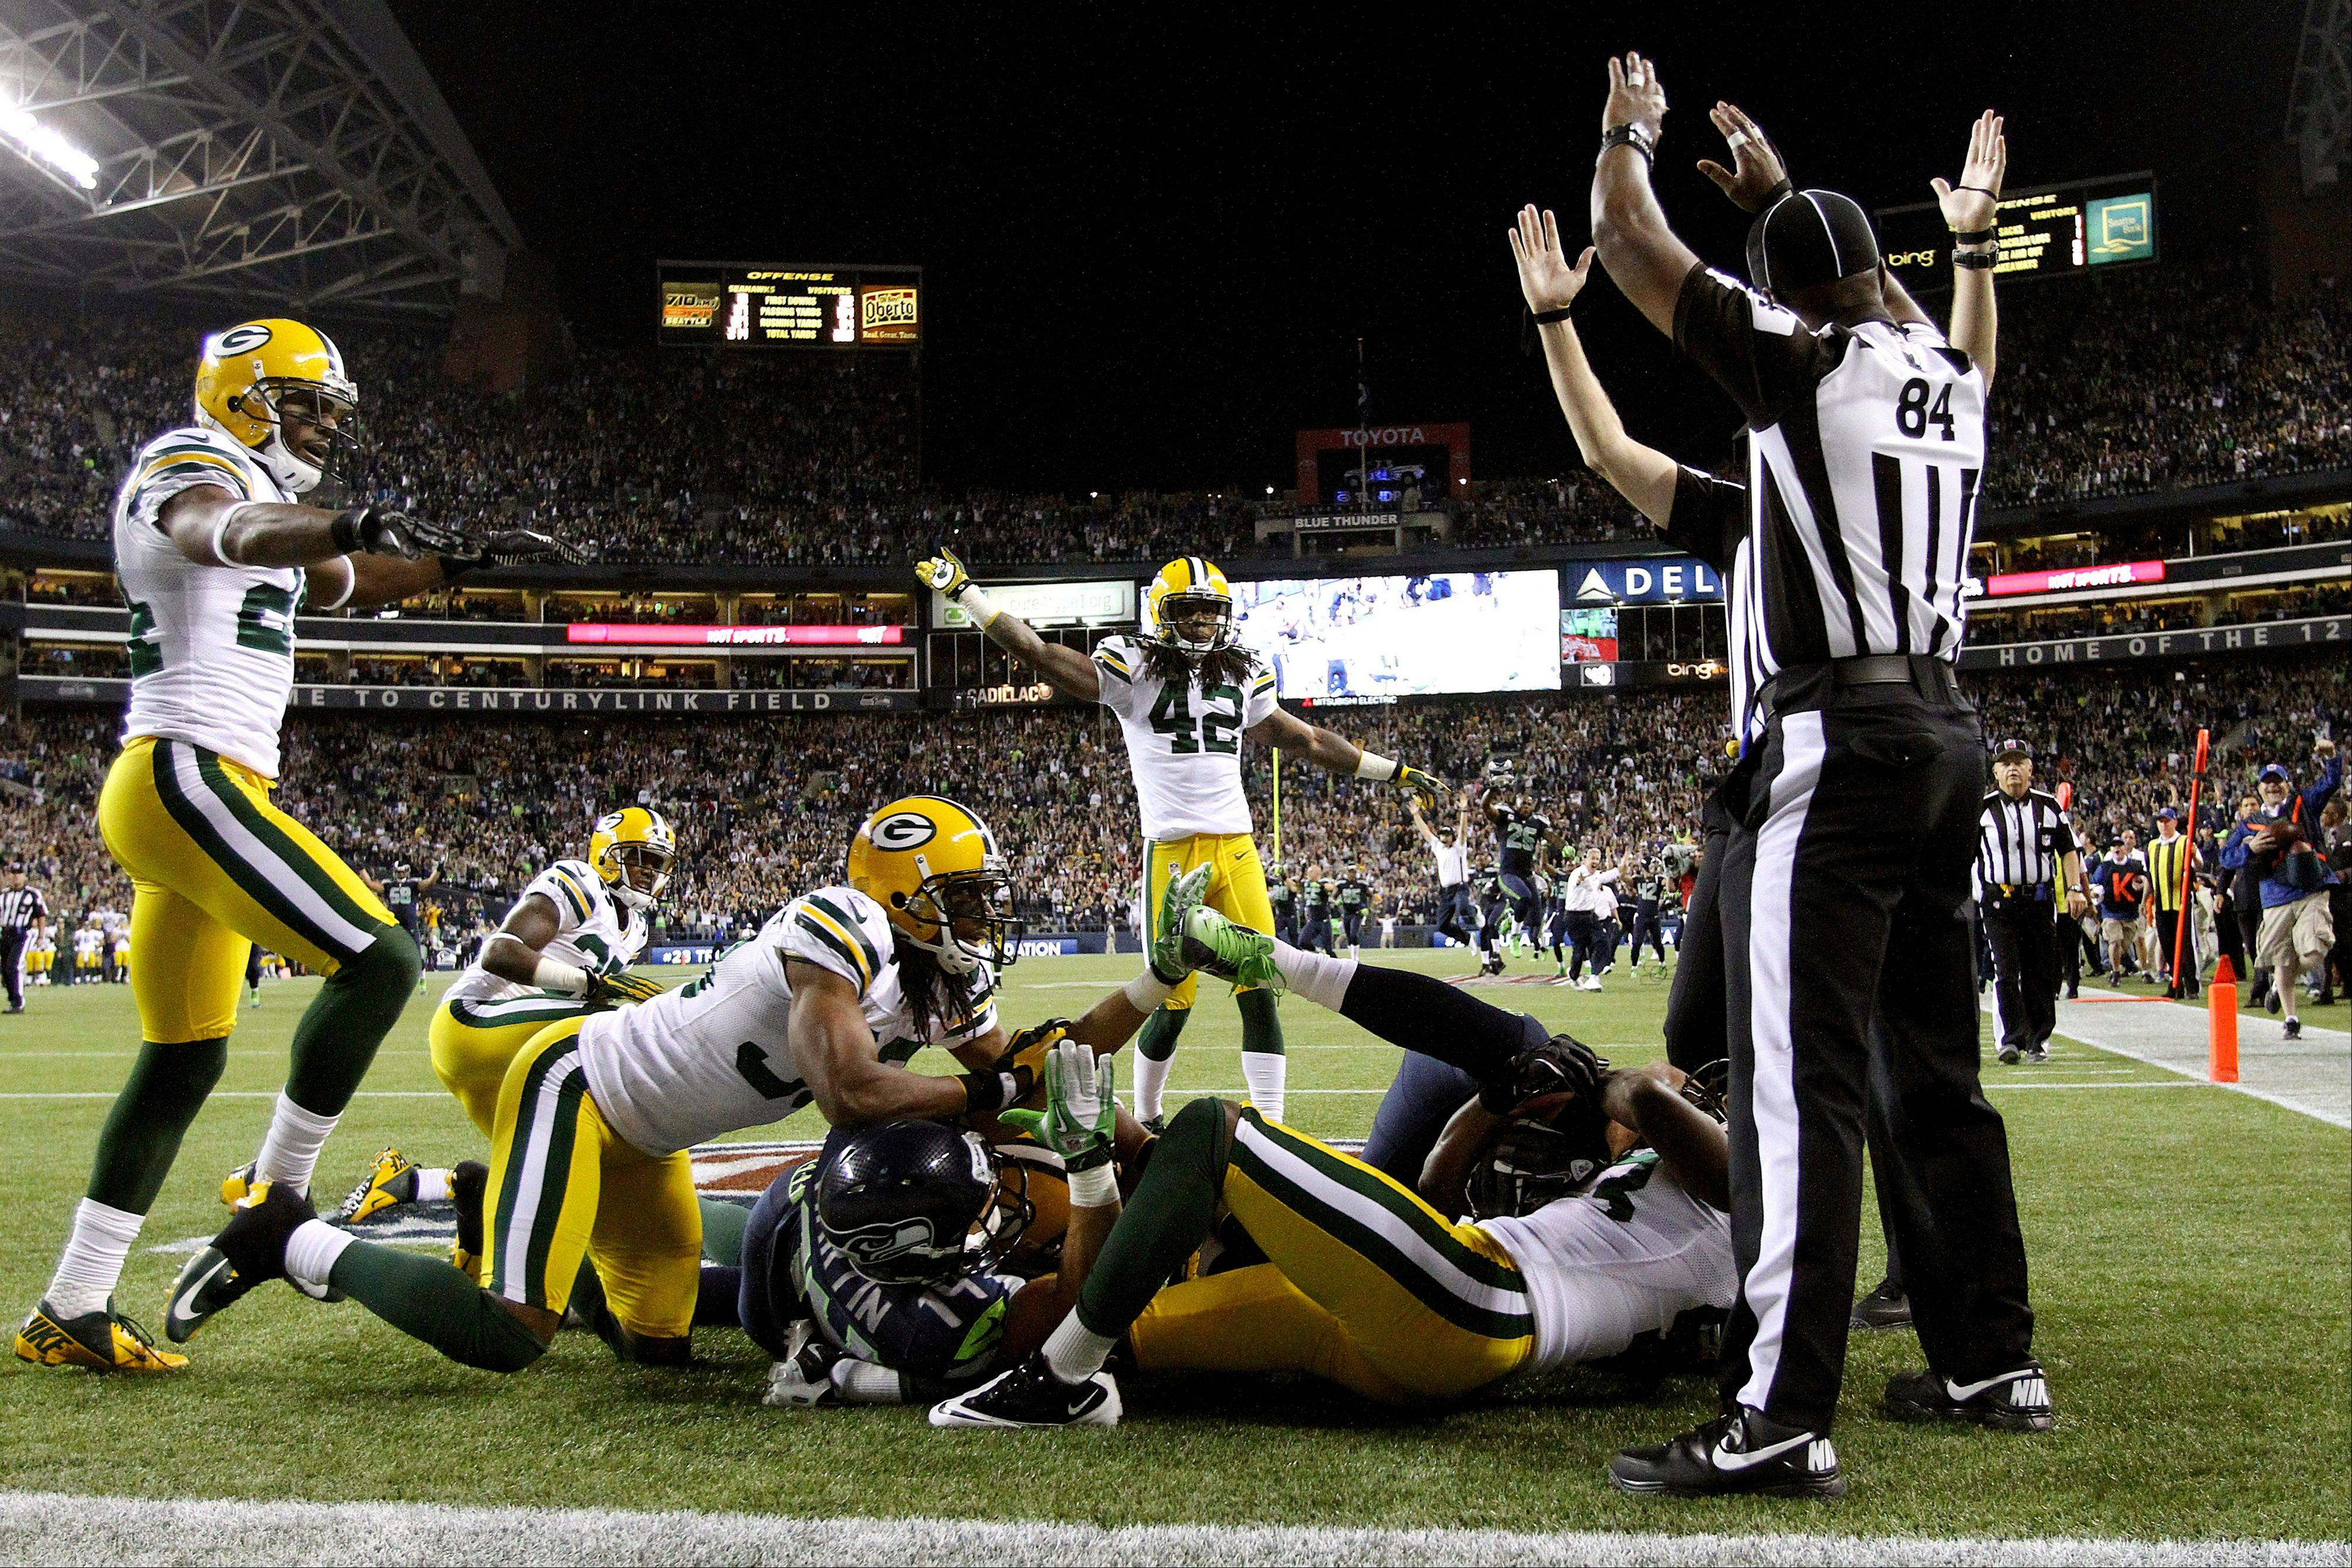 Officials signal after Seattle Seahawks wide receiver Golden Tate pulled in a last-second pass from quarterback Russell Wilson to defeat the Green Bay Packers 14-12 on Monday night in Seattle. The touchdown call stood after review.